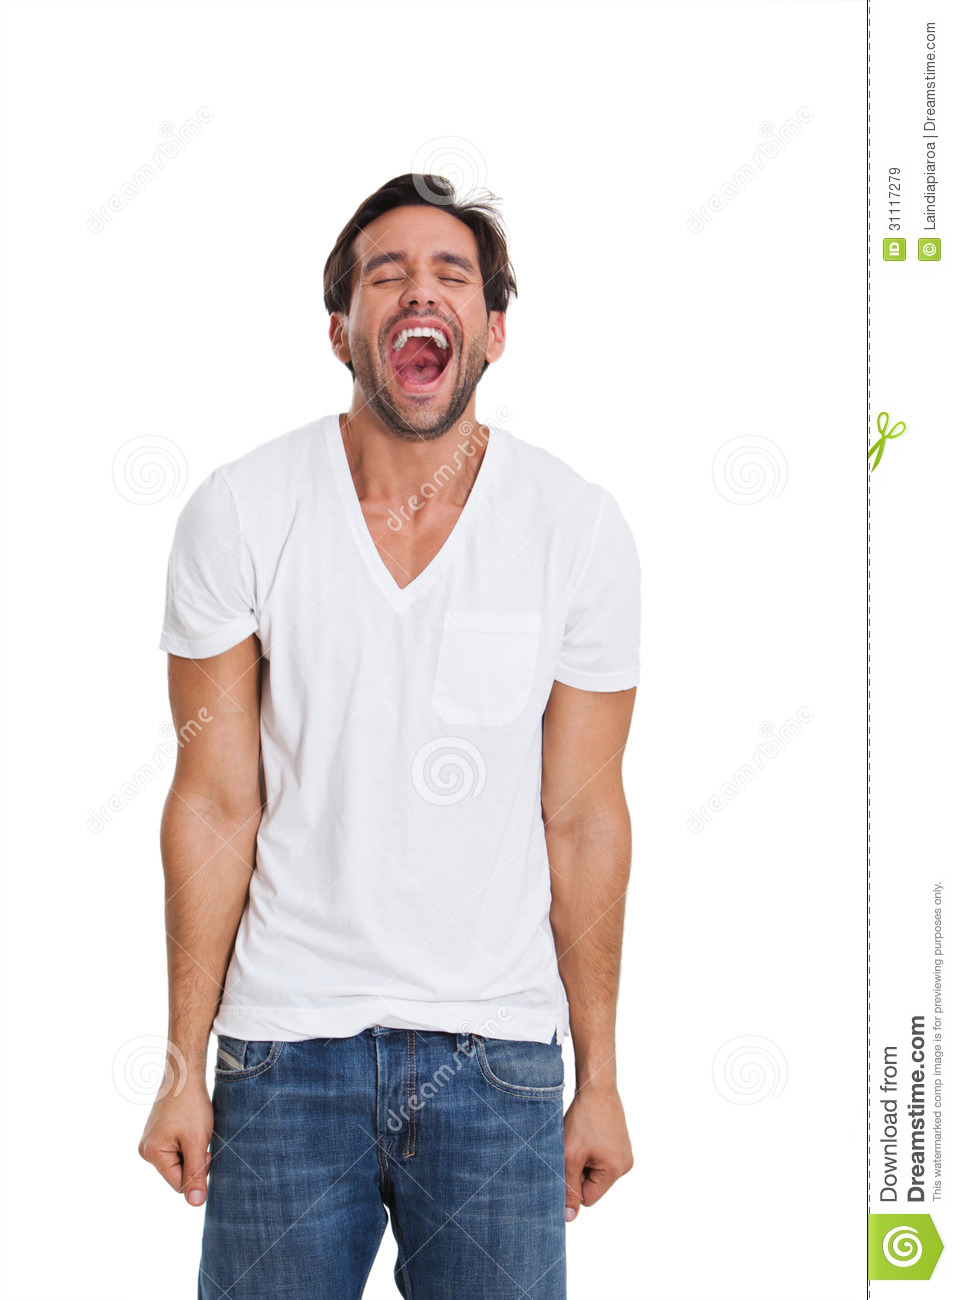 Young Man Screaming Over White Background Royalty Free Stock Images - Image 31117279